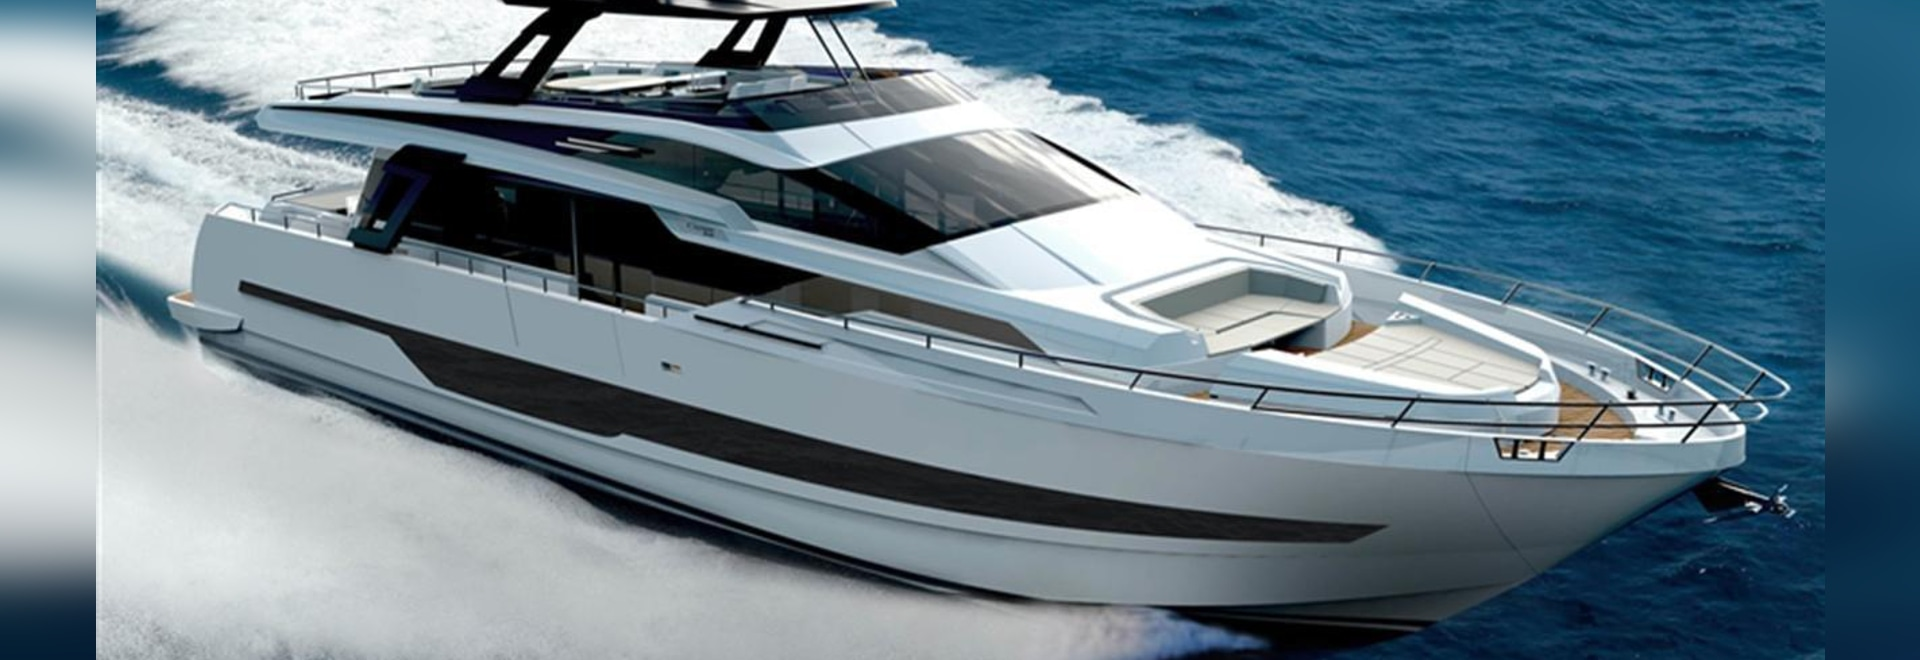 Cayman Yachts launches new flagship F920